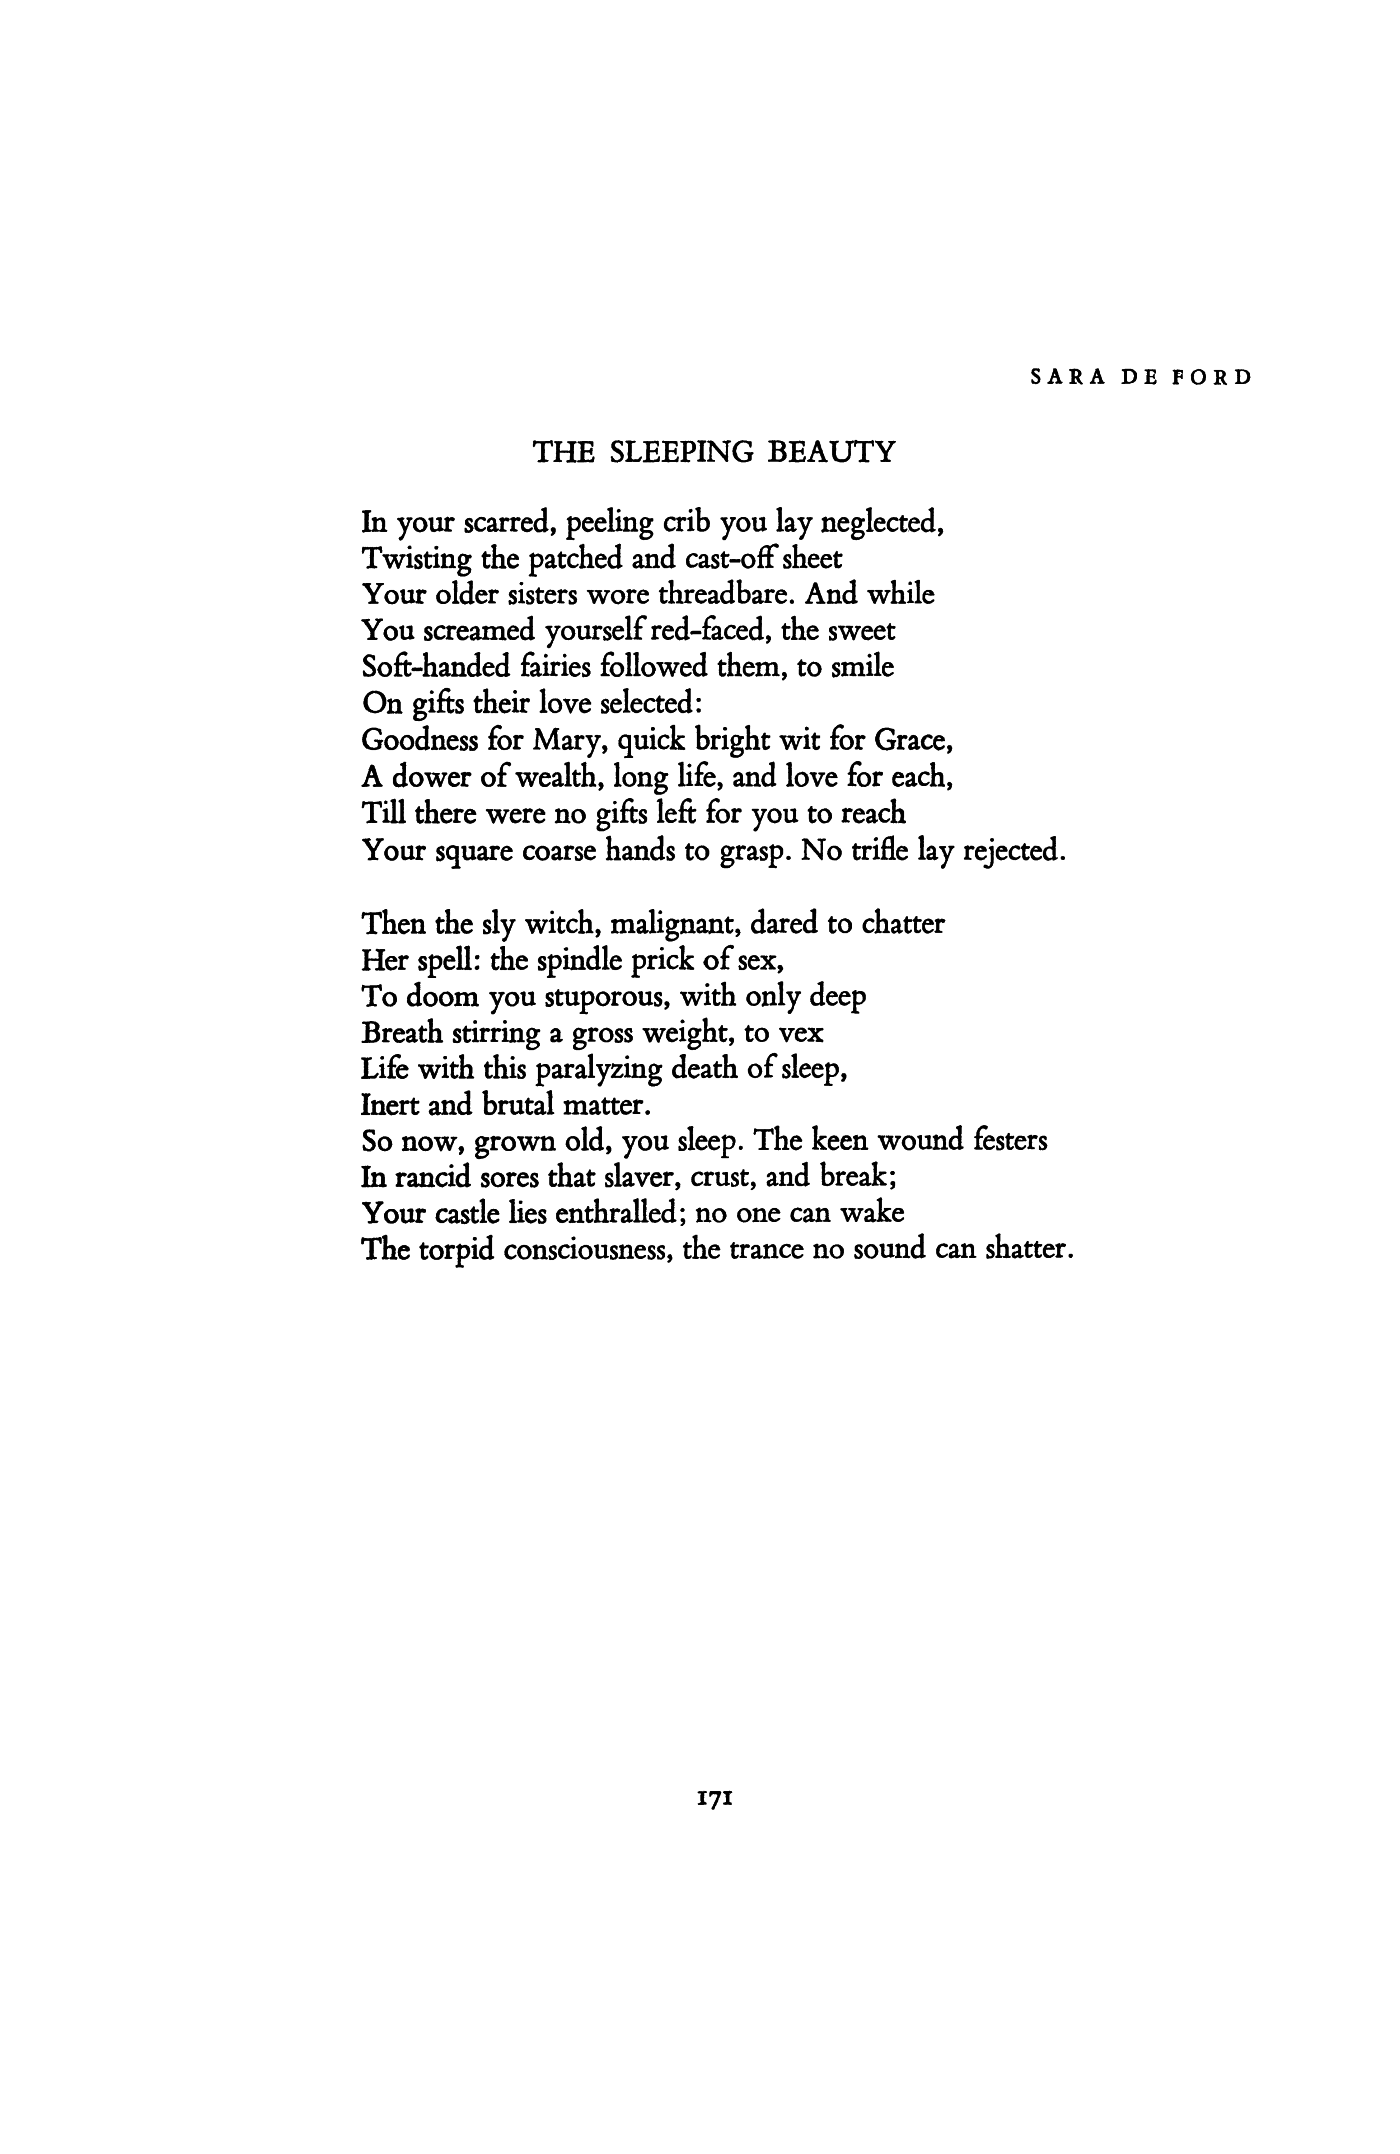 Poems About Beauty 6